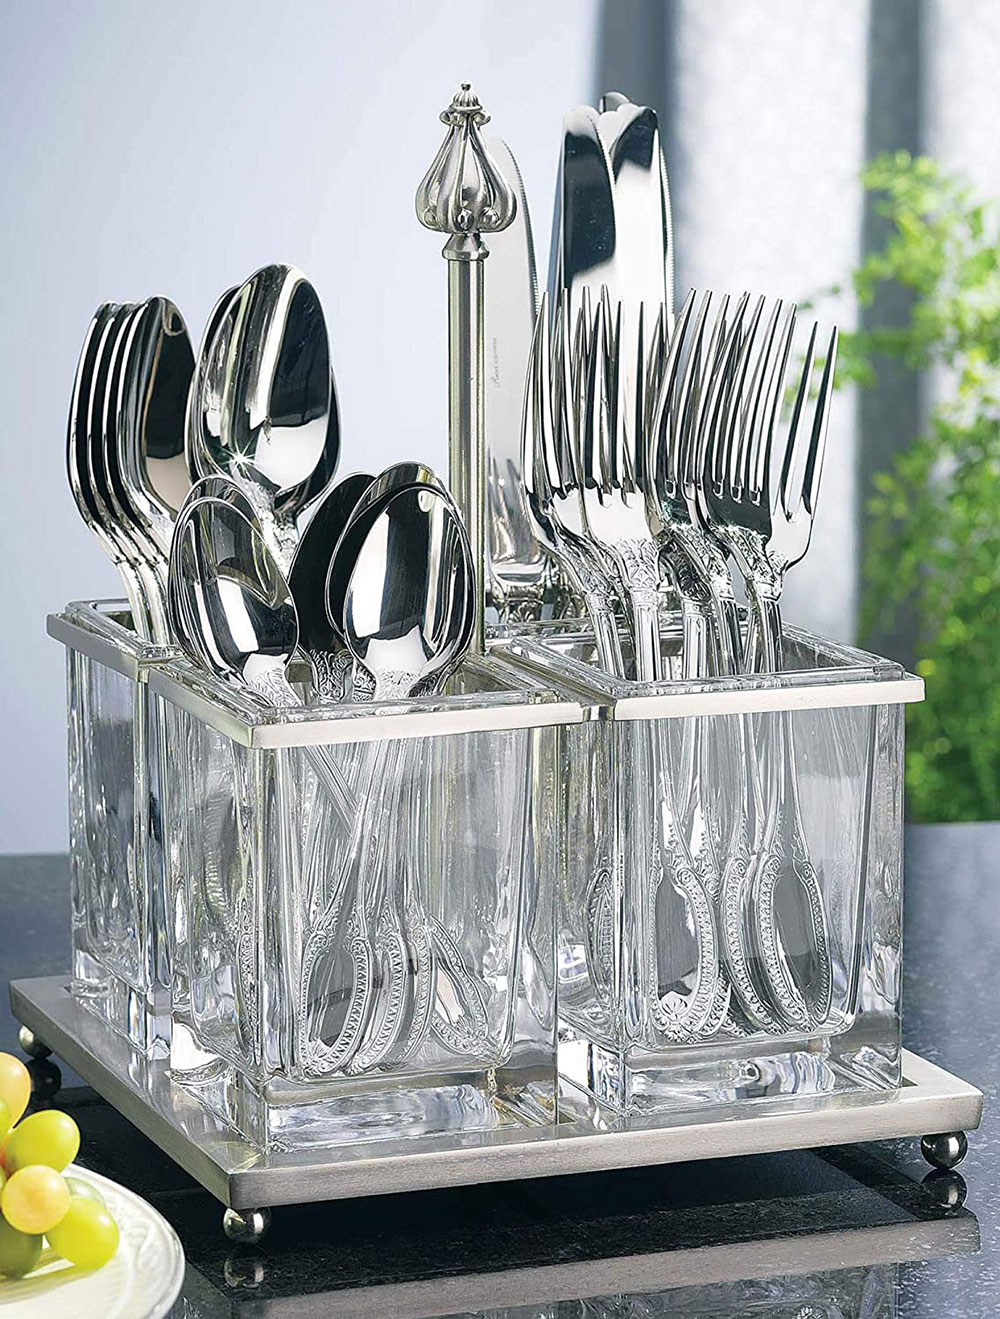 Nickel-and-glass cutlery caddy What is the best kitchen utensil holder out there?